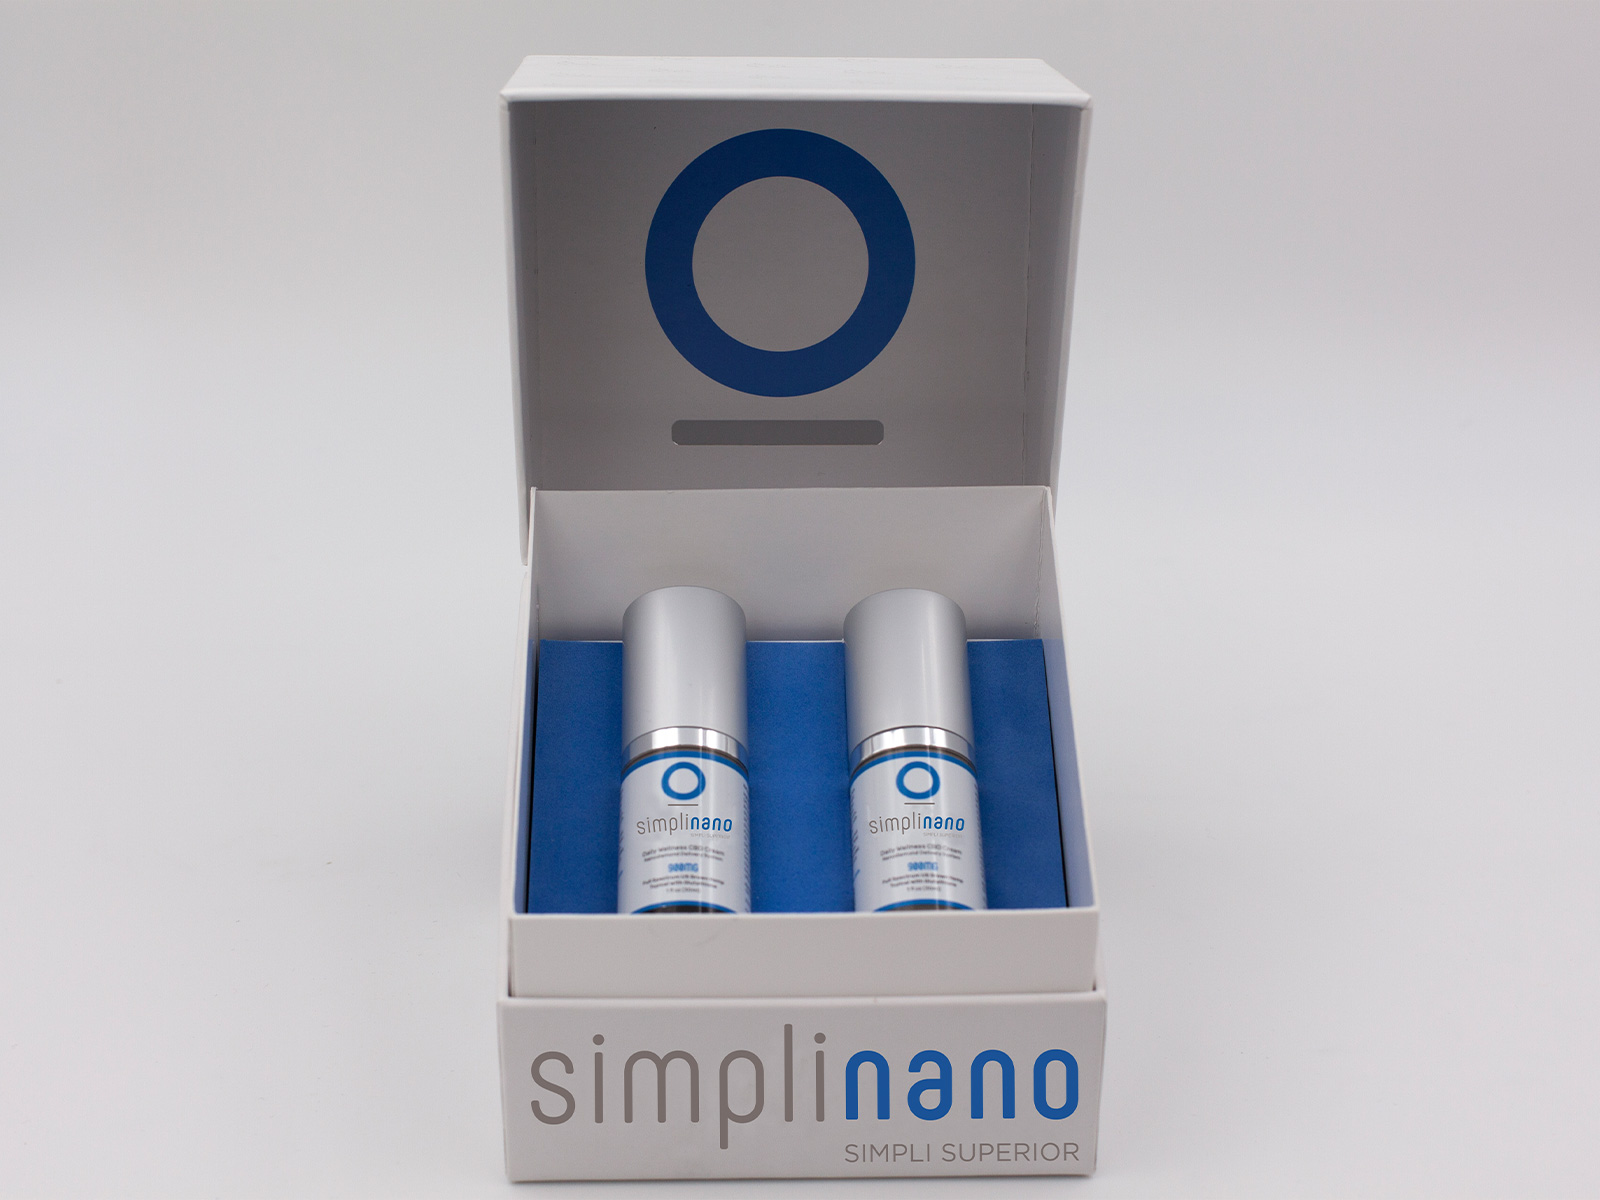 SimpliNano Top Tier Packaging w Product